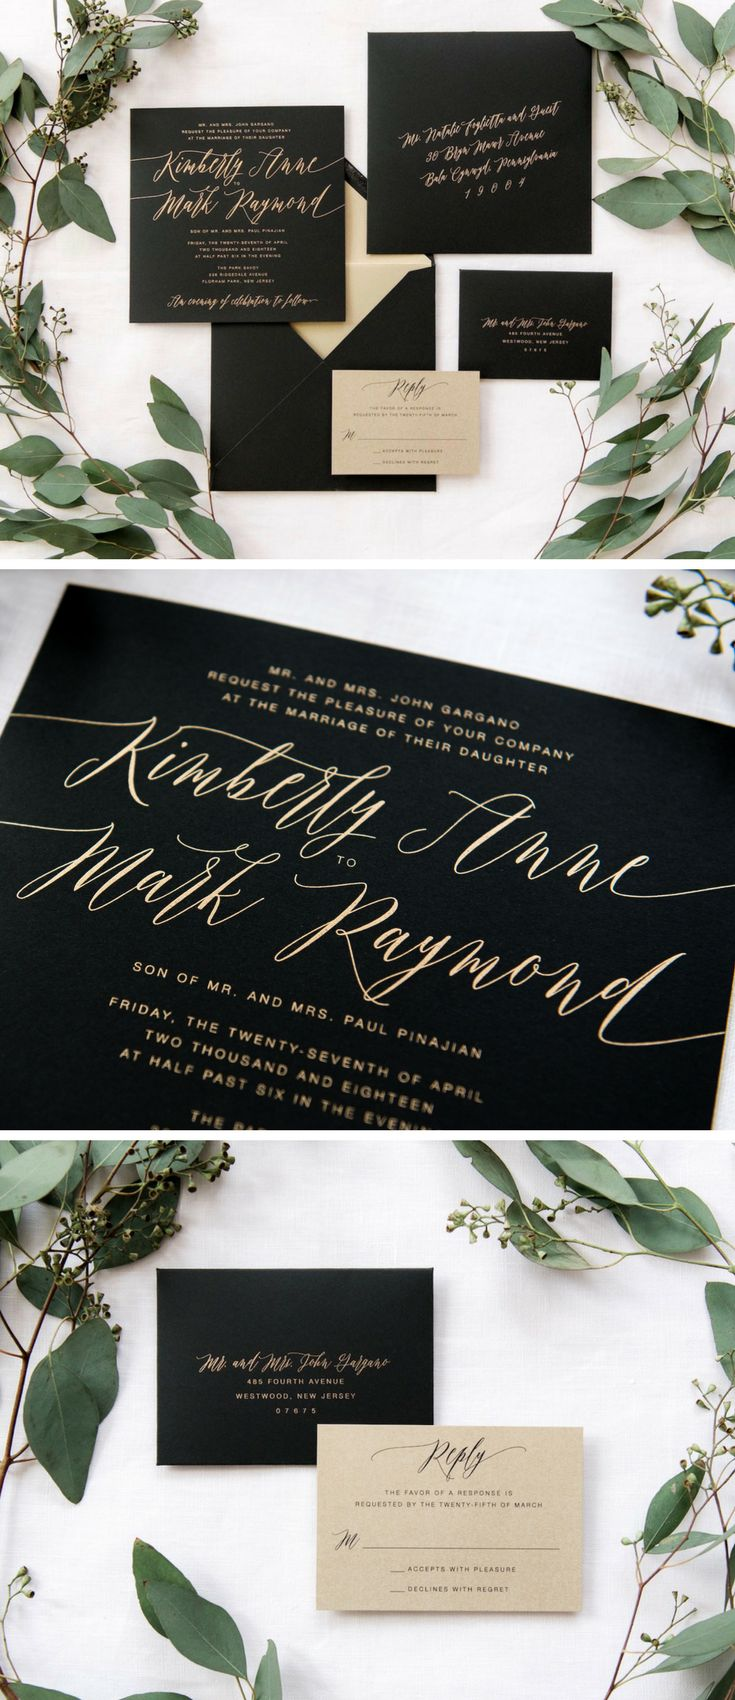 golden wedding invitations%0A Striking and sweet  Jaclyn is a matte black and gold wedding invitation  suite  Featuring a     u   d x     u   d square invitation  the playful gold script  makes a